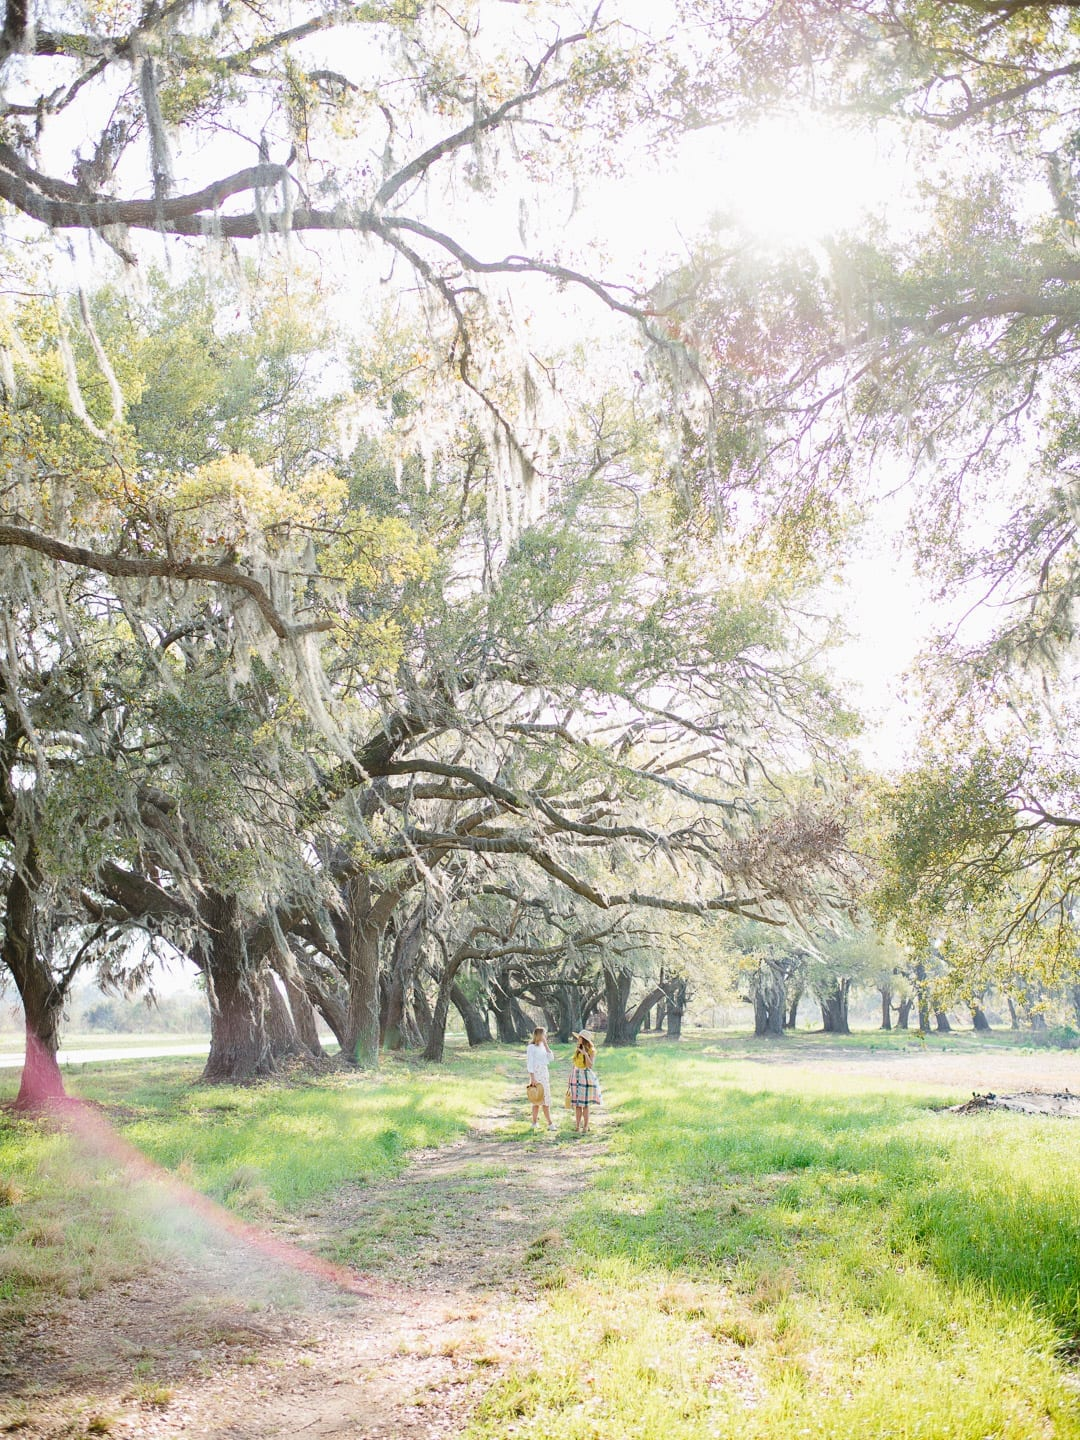 live oaks, the south, girls talking, lens flare